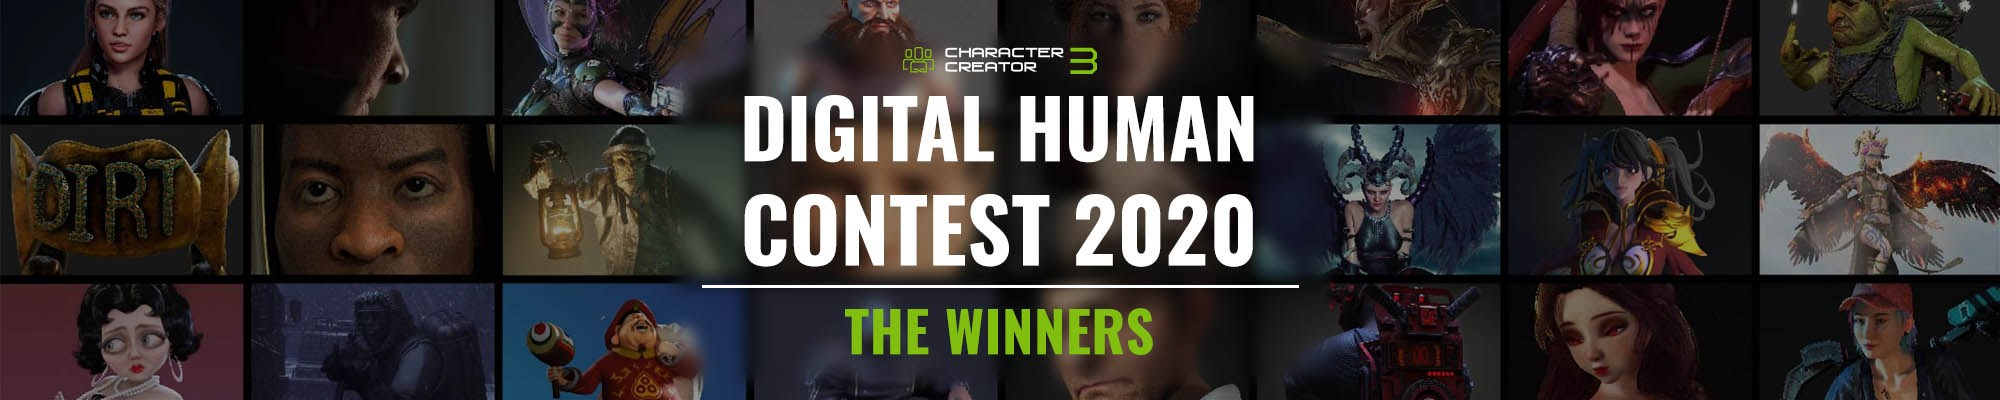 Winners of CC Digital Human Contest 2020